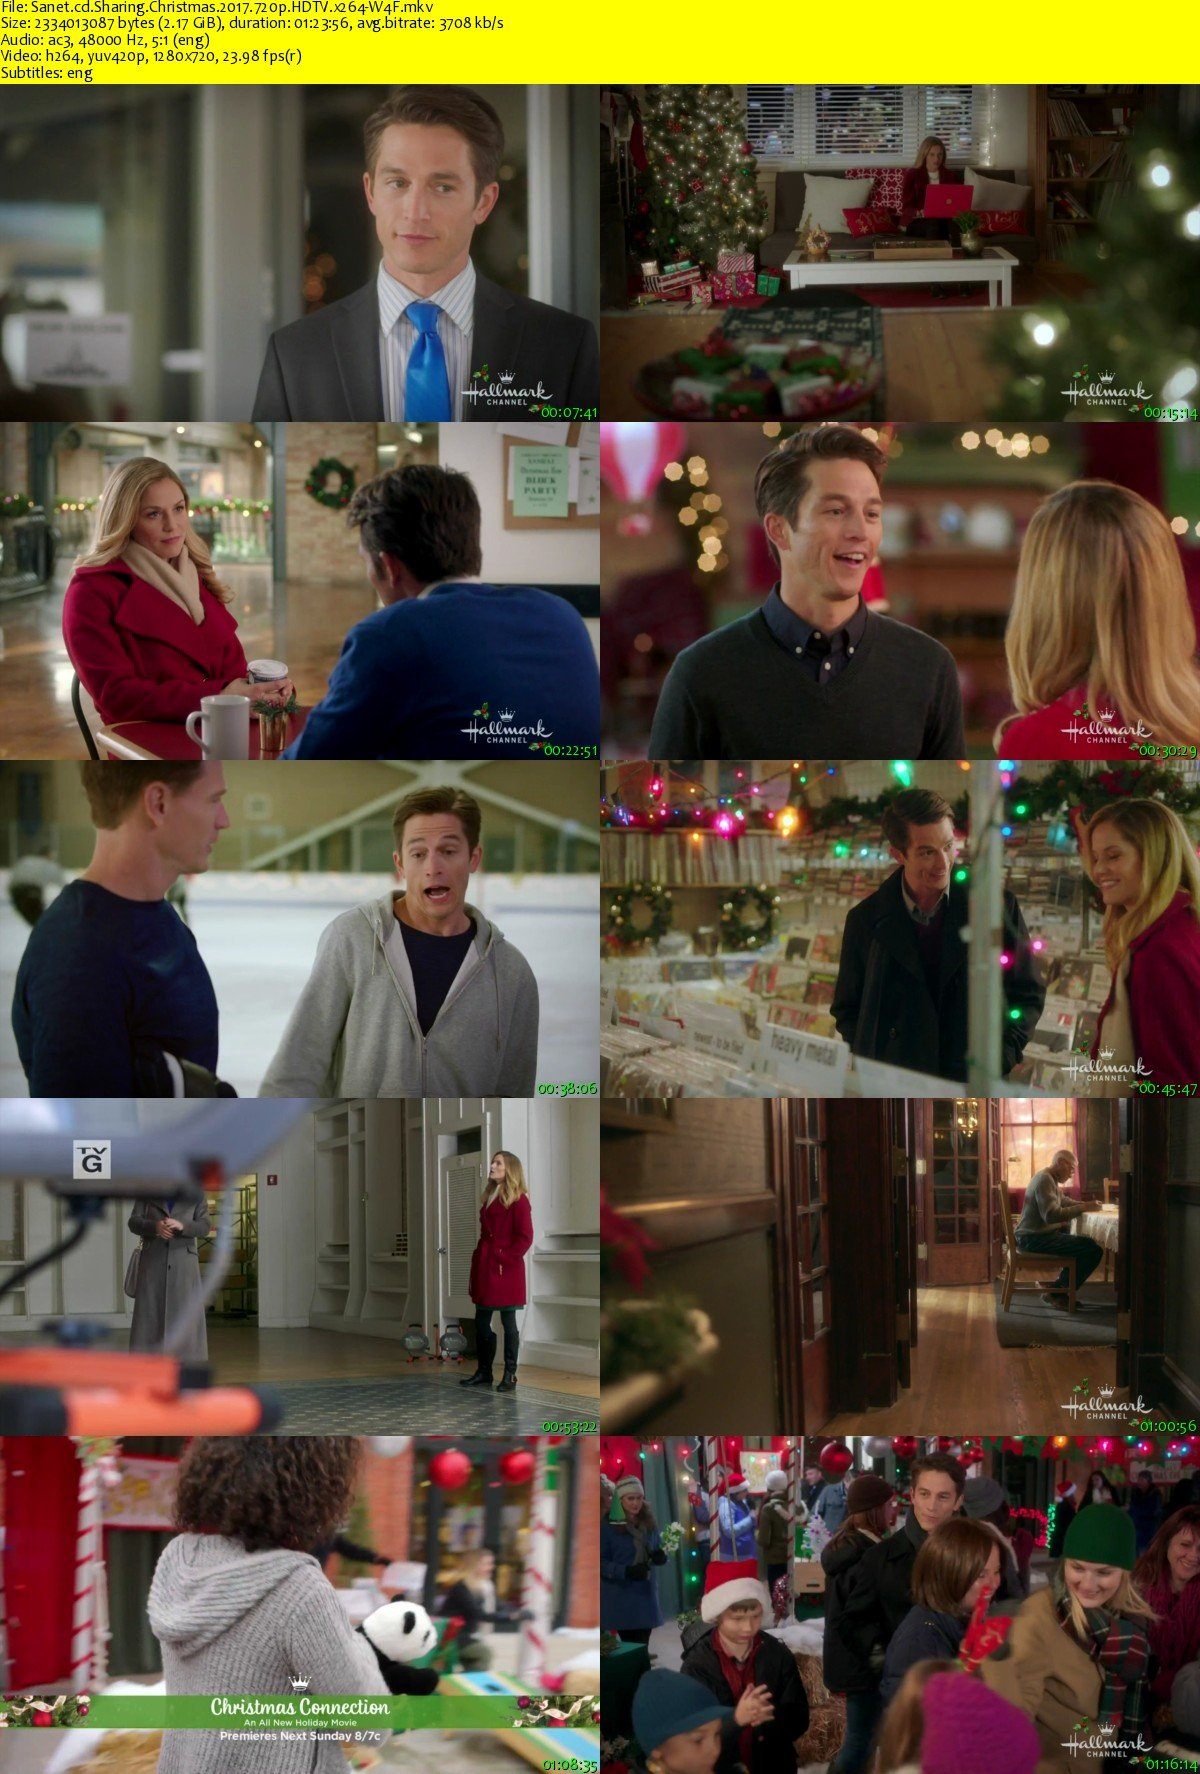 Sharing Christmas Hallmark.Download Sharing Christmas 2017 720p Hdtv X264 W4f Softarchive